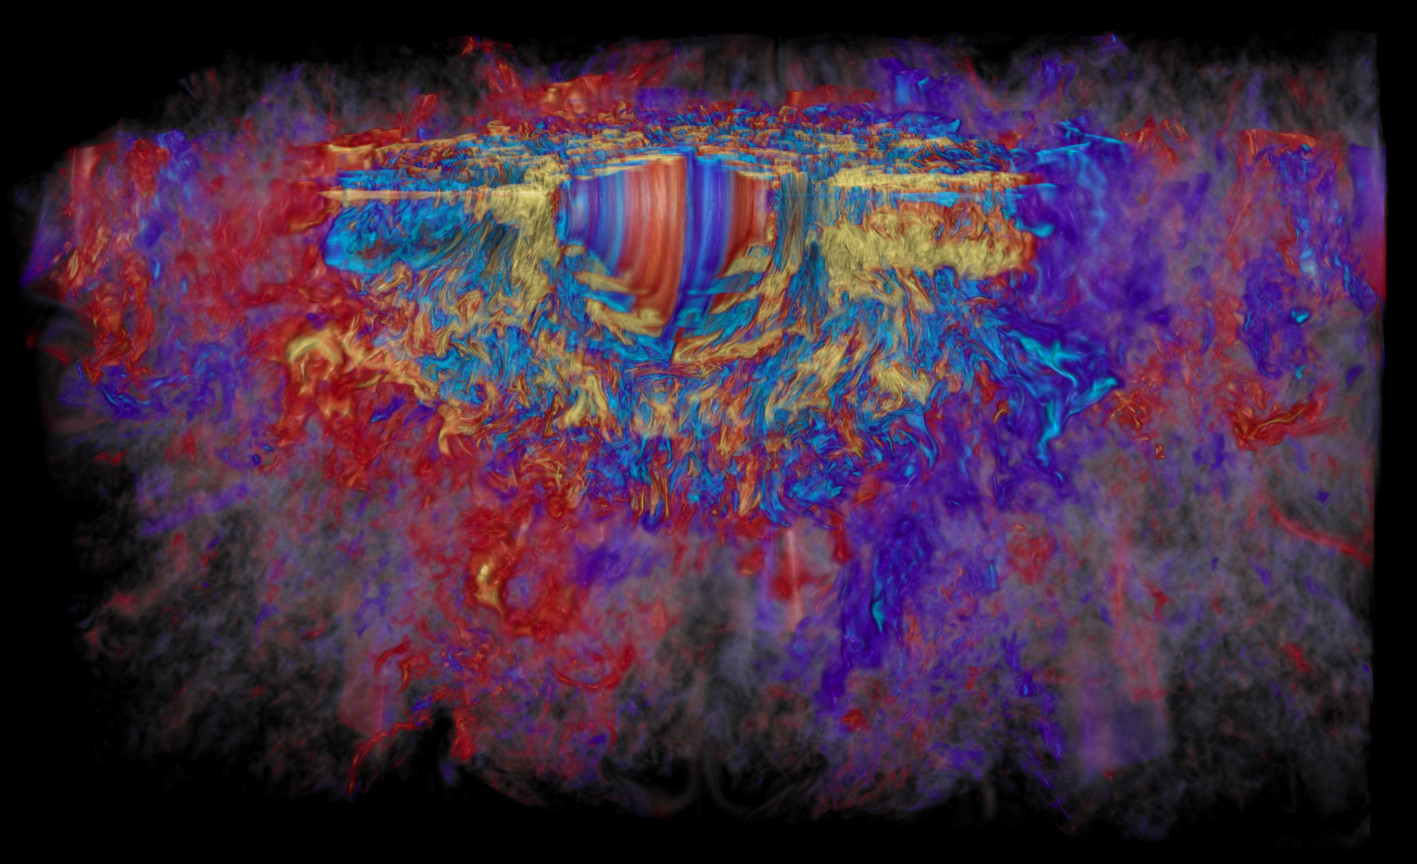 A supercomputer visualisation of the toroidal magnetic field in a collapsed, massive star, showing how in a span of 10 milliseconds the rapid differential rotation revs up the stars magnetic field to a million billion times that of our Sun (yellow is positive, light blue is negative). Red and blue represent weaker positive and negative magnetic fields, respectively. Image credit: Robert R. Sisneros (NCSA) and Philipp Mösta.